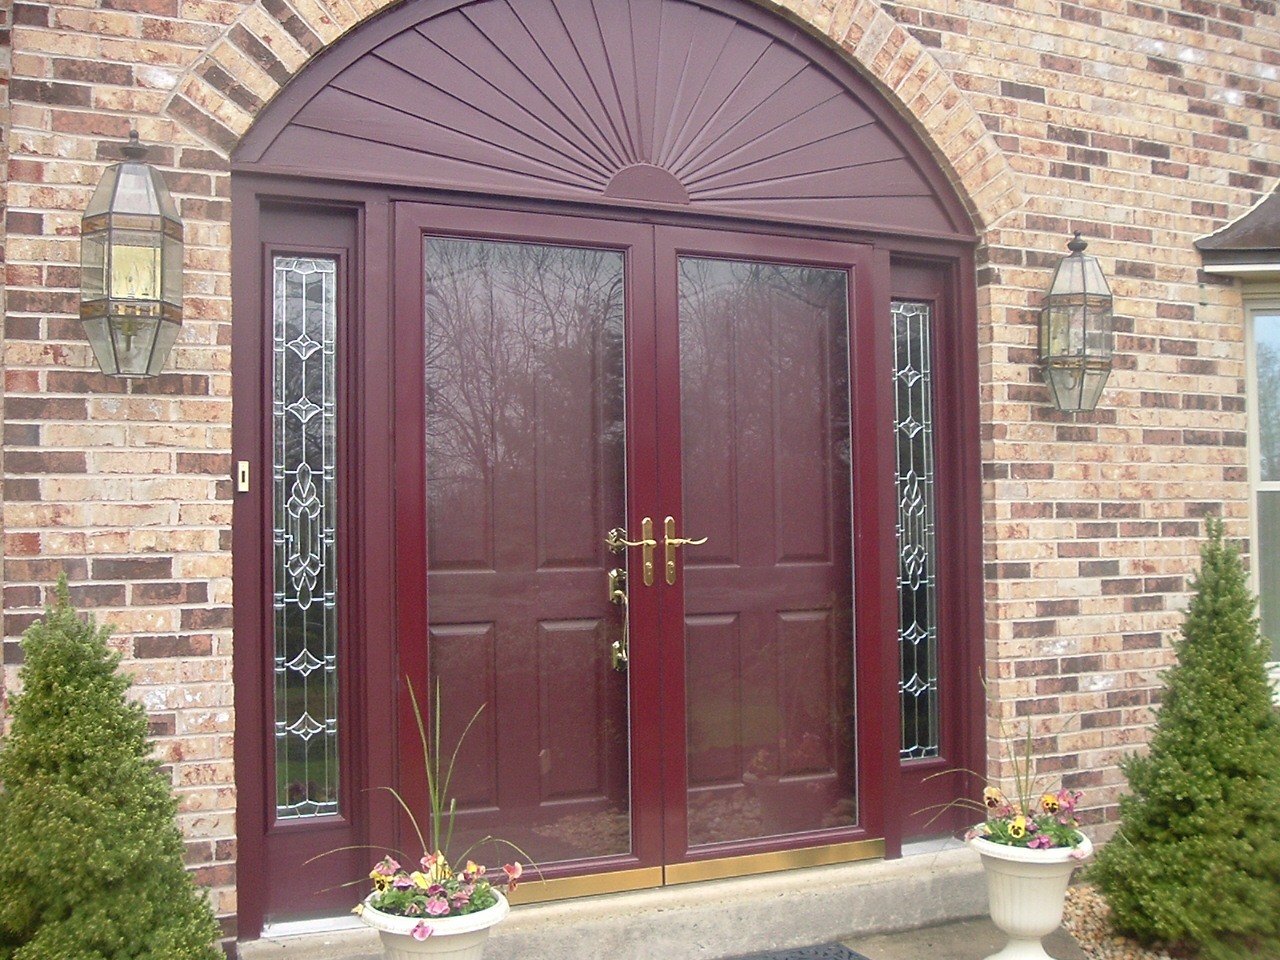 Storm Doors Rockton IL   Kobyco   Replacement Windows, Interior And Exterior  Doors, Closet Organizers And More! Serving Rockford IL And Surrounding  Areas.